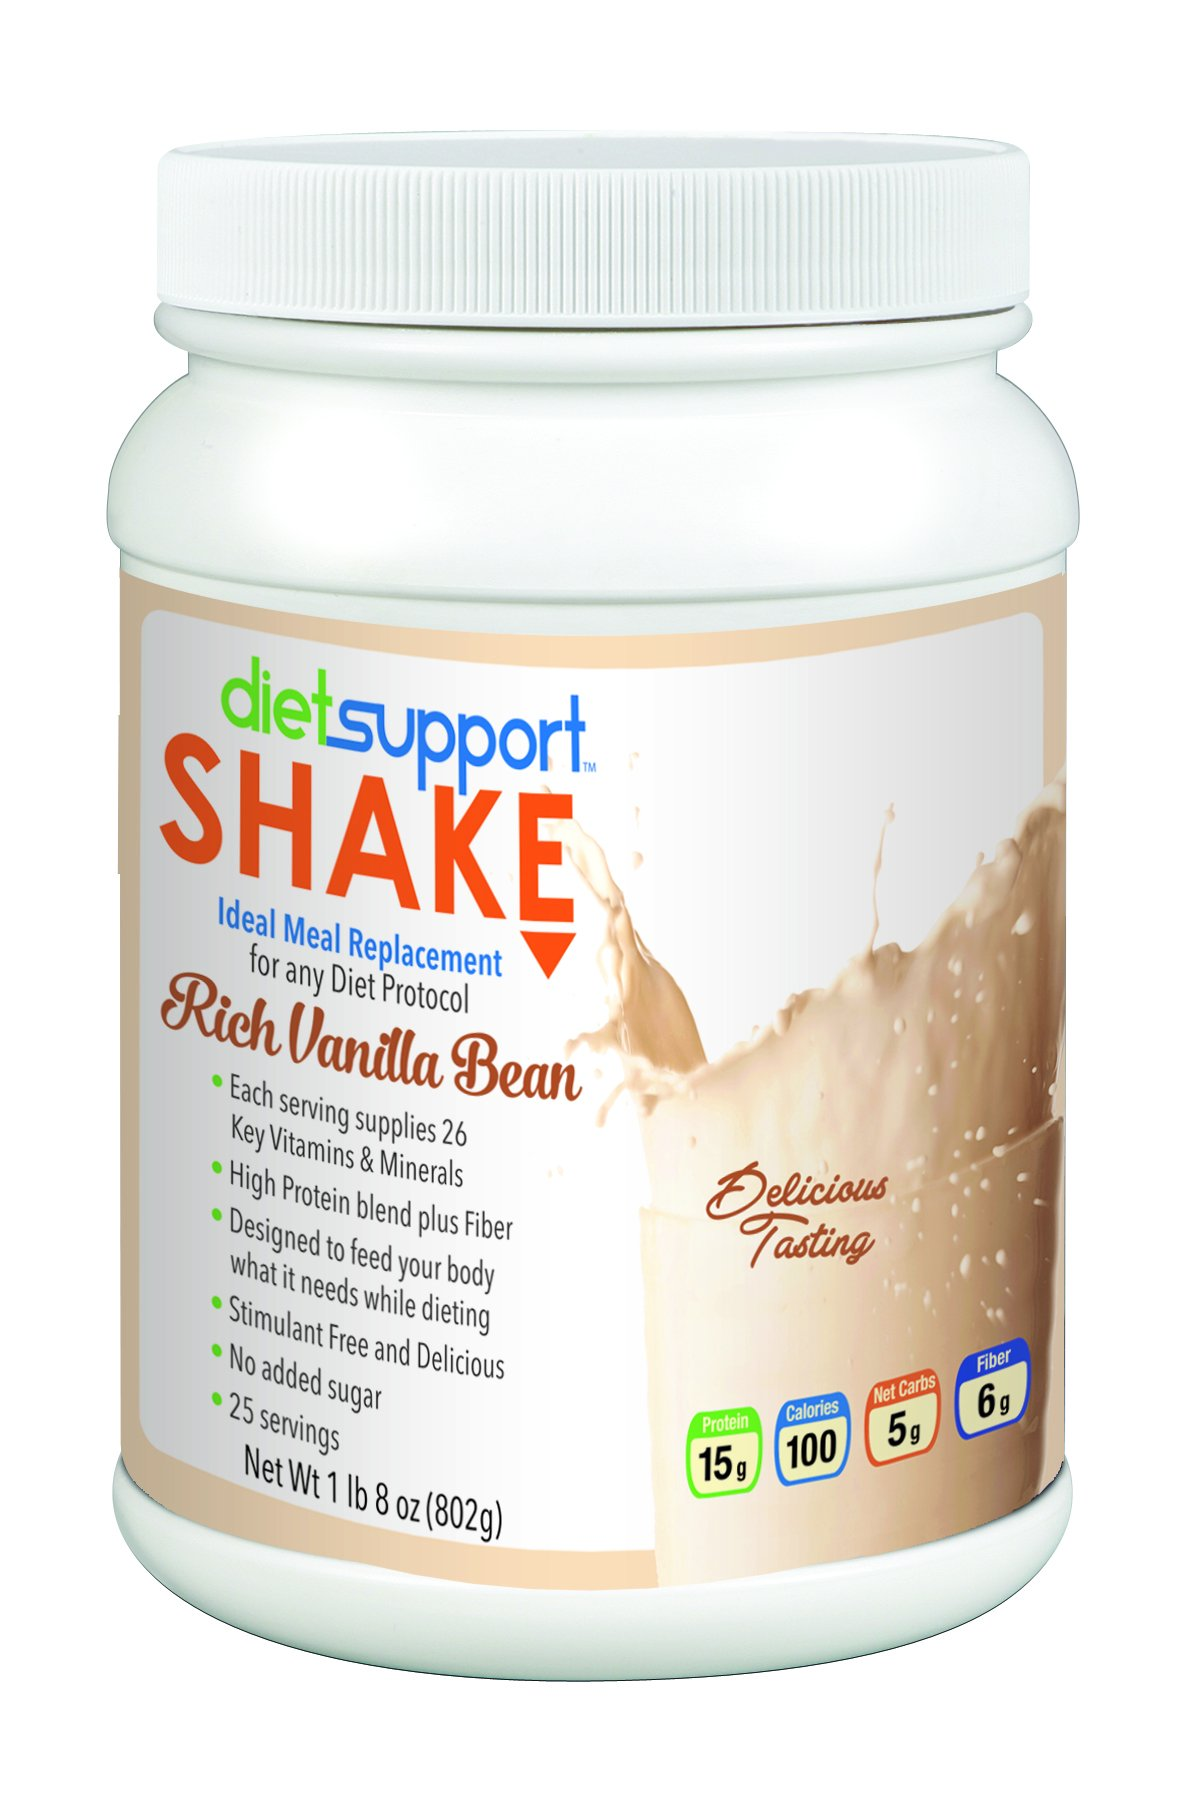 Diet Support Meal Replacement Shake - Rich Vanilla Bean